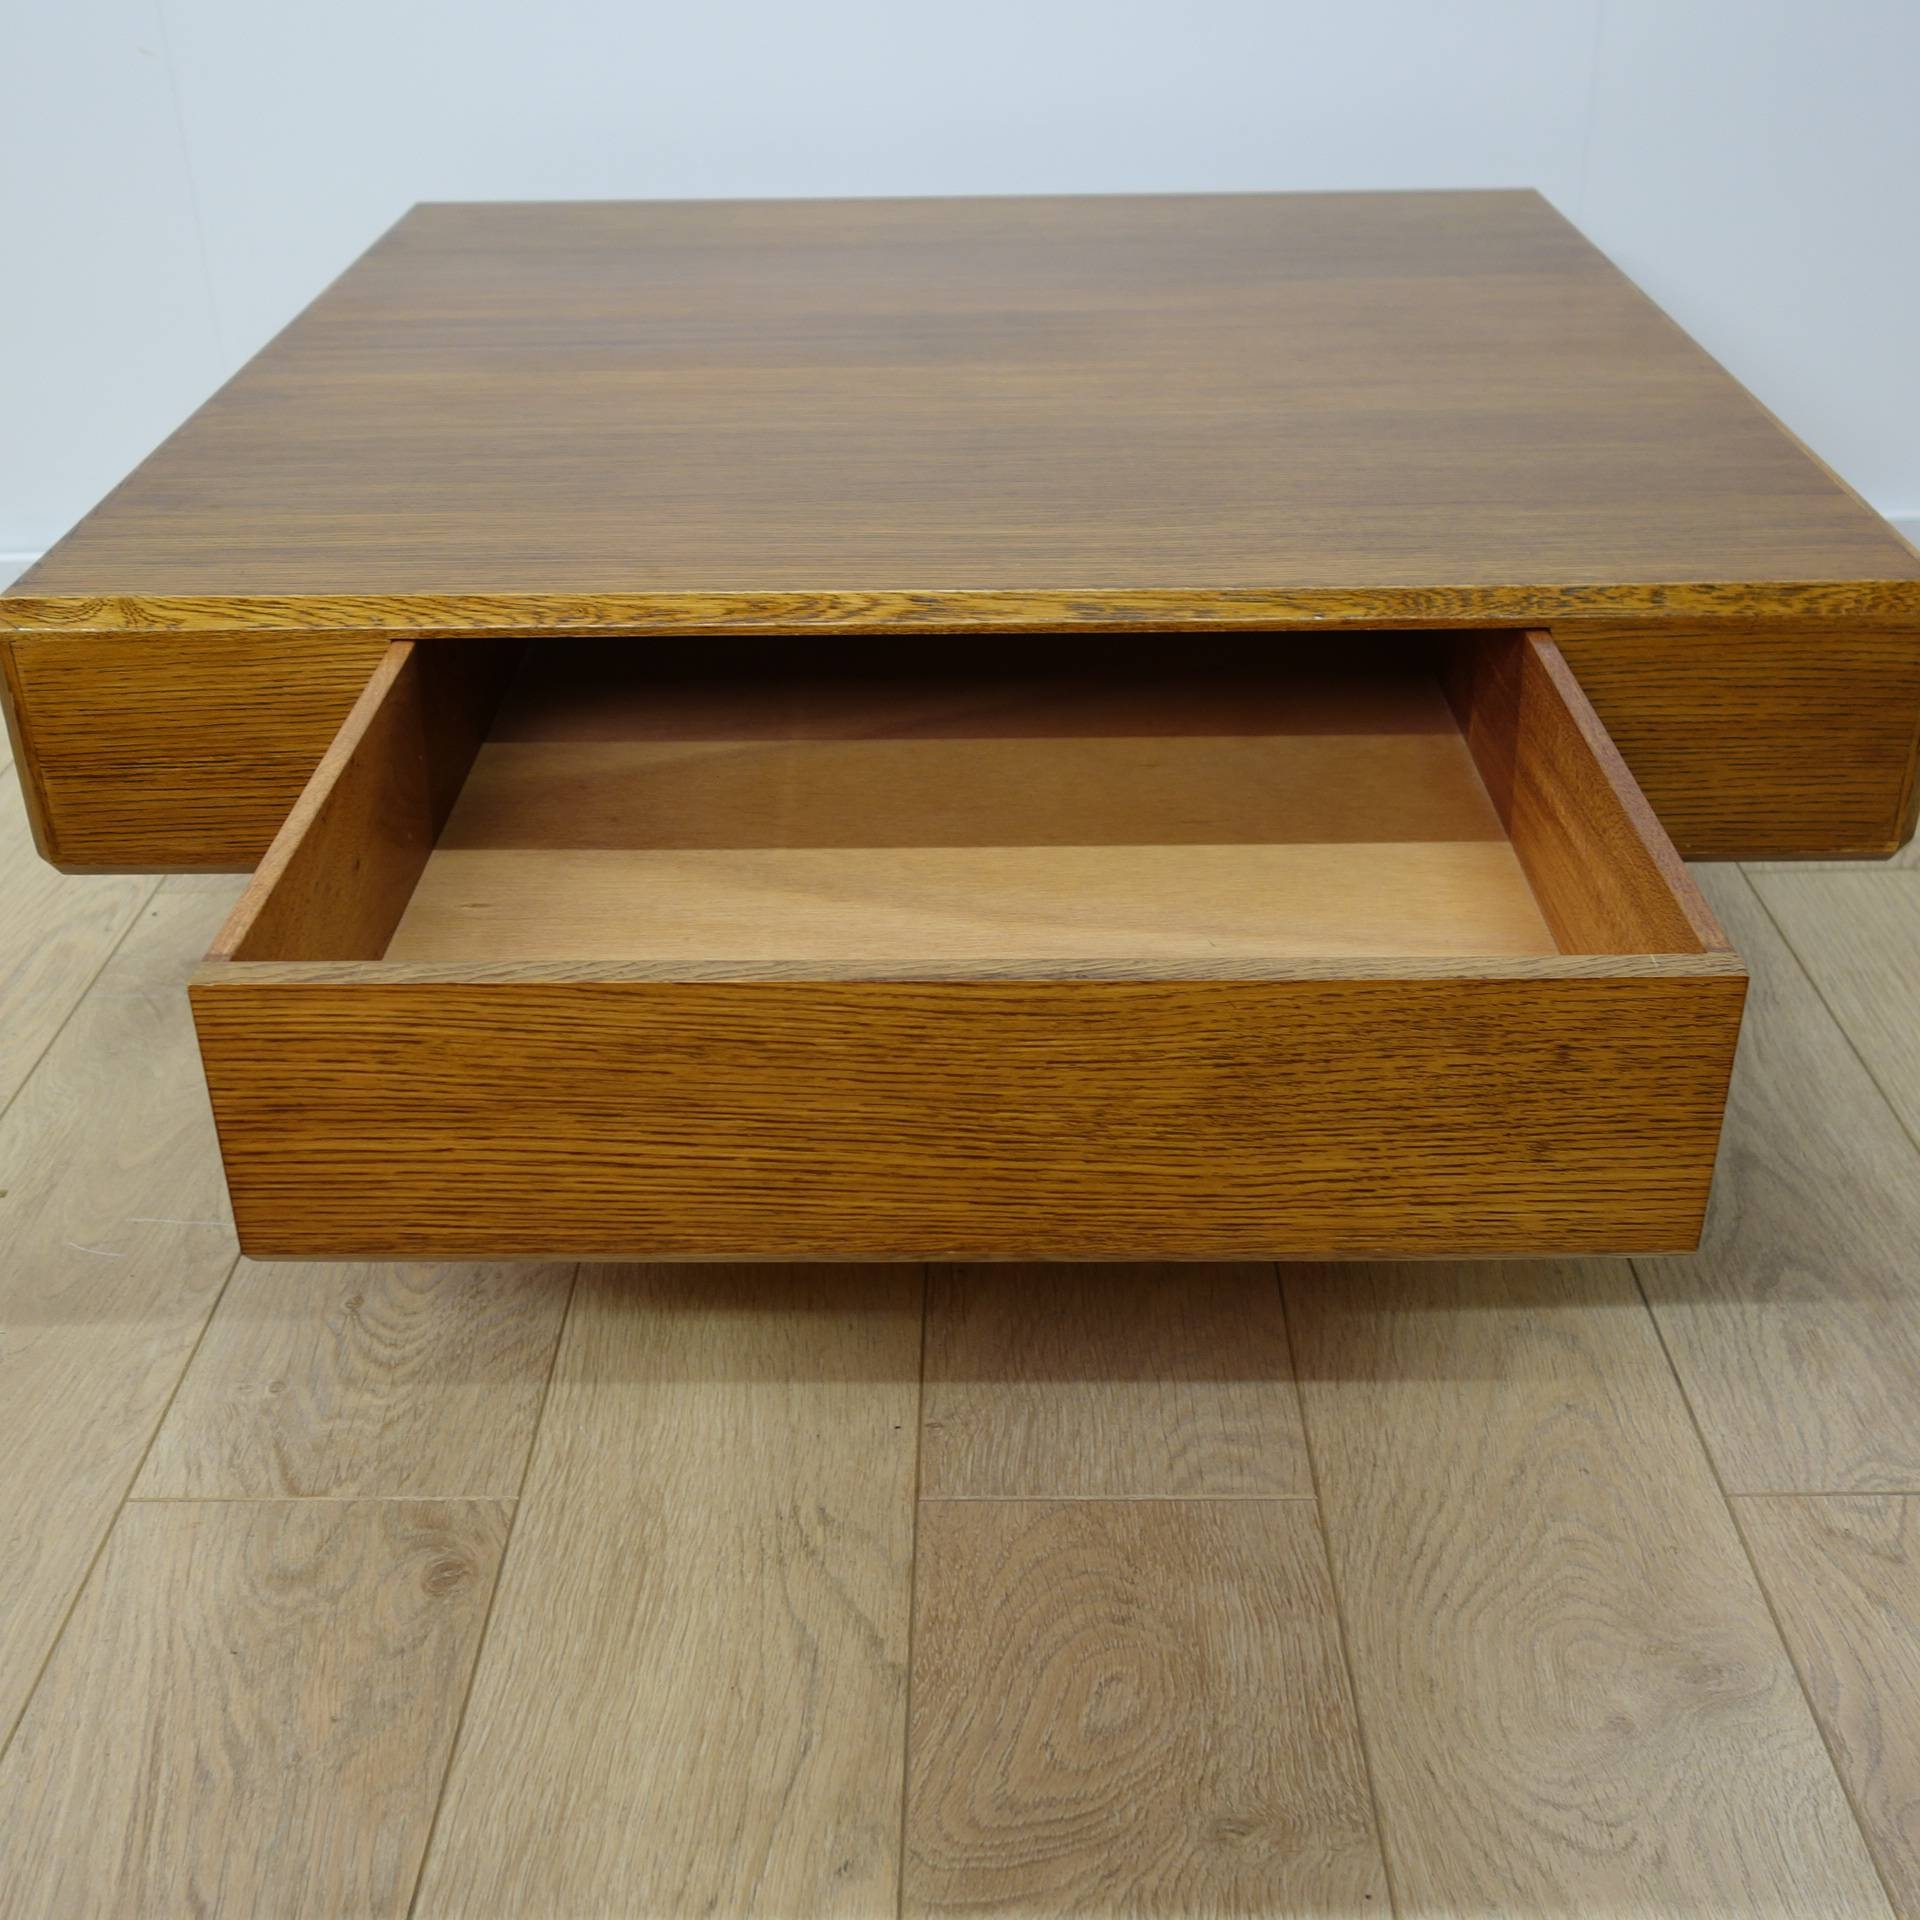 Tables Archives - Page 2 Of 2 - Mark Parrish Mid Century Modern within Low Oak Coffee Tables (Image 15 of 15)